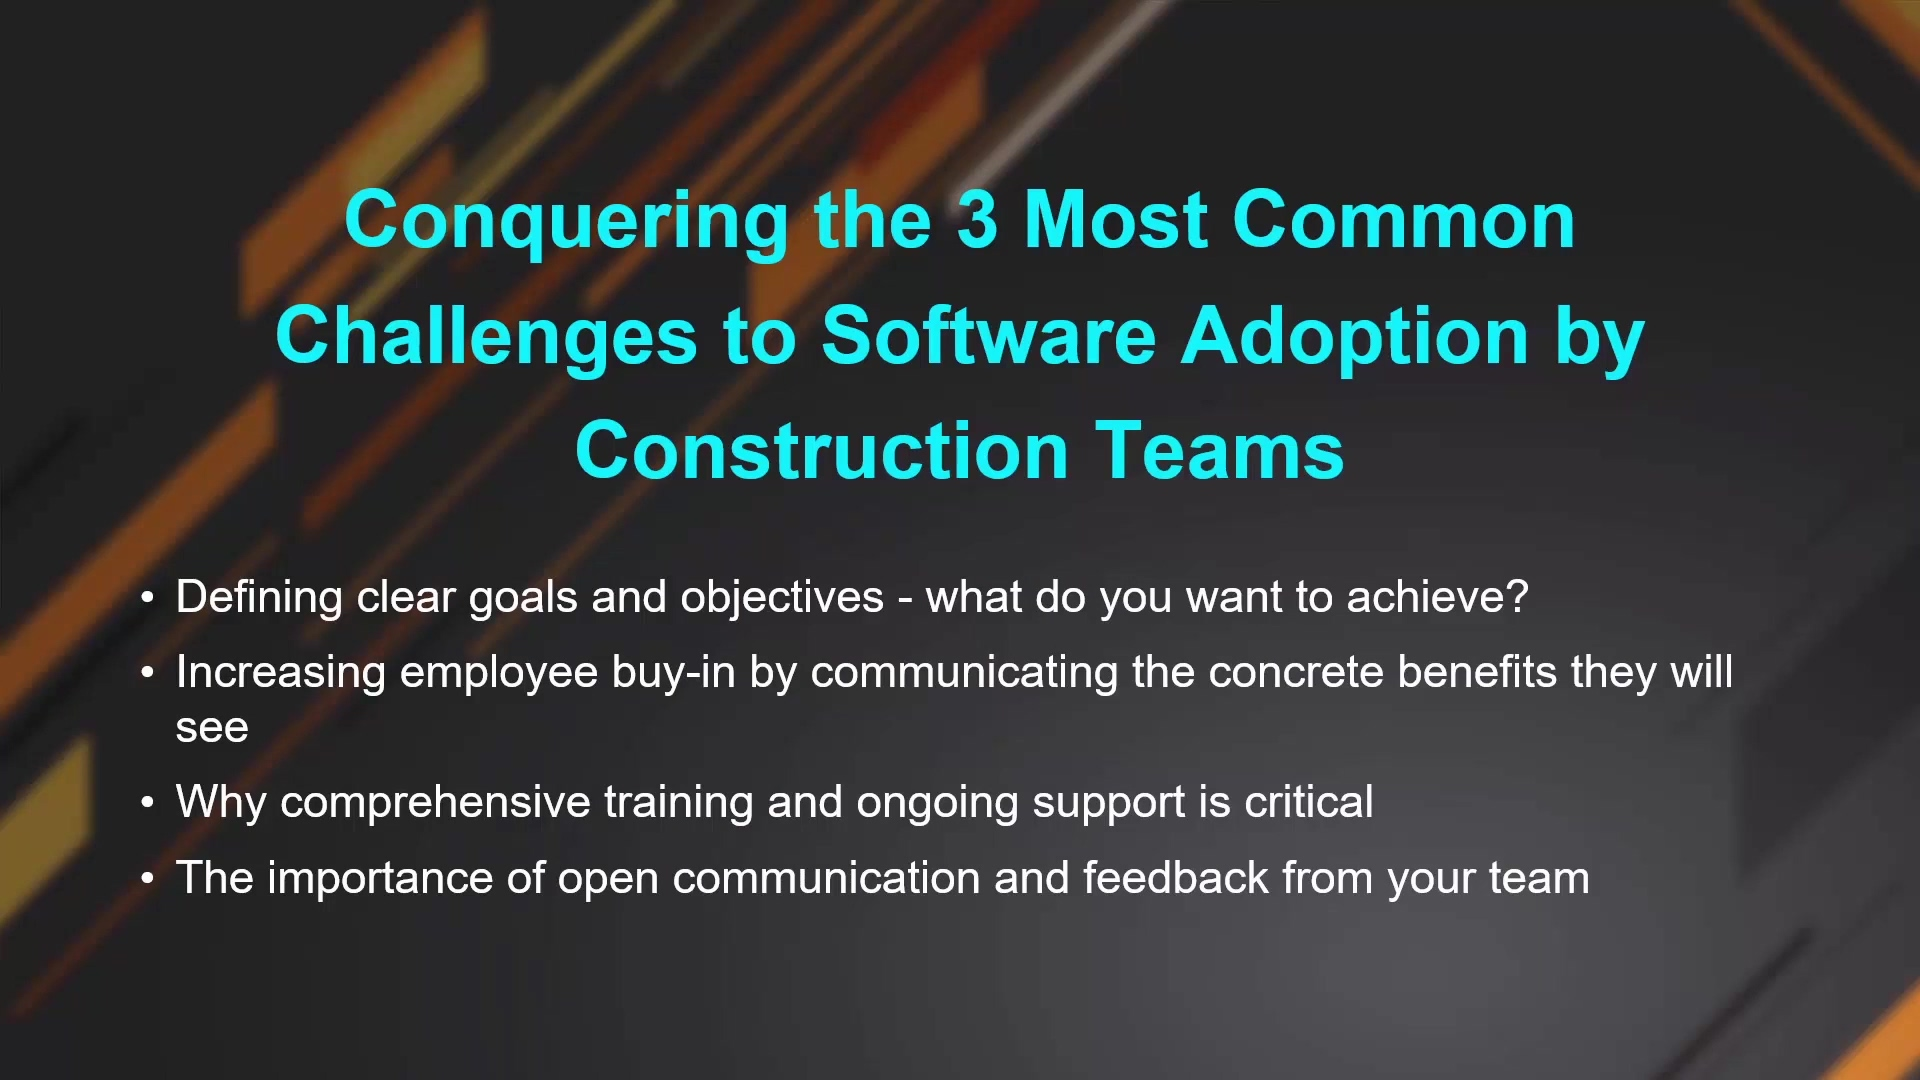 Conquering the 3 Most Common Objections to Software Adoption by Construction Teams